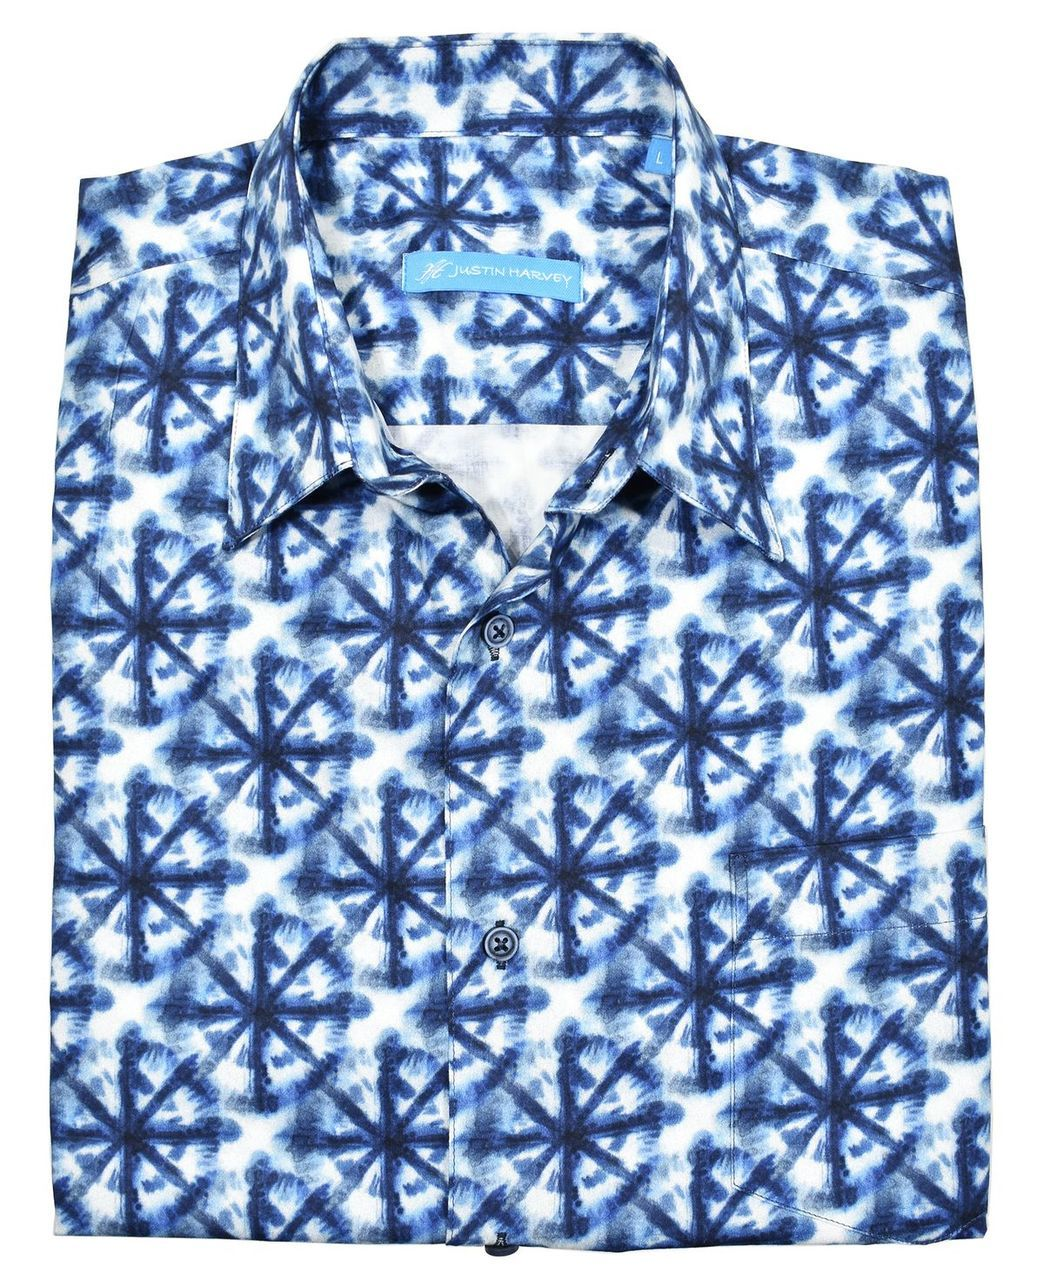 ZW131 Peace of Blue Cotton Shirt - Marcello Sport